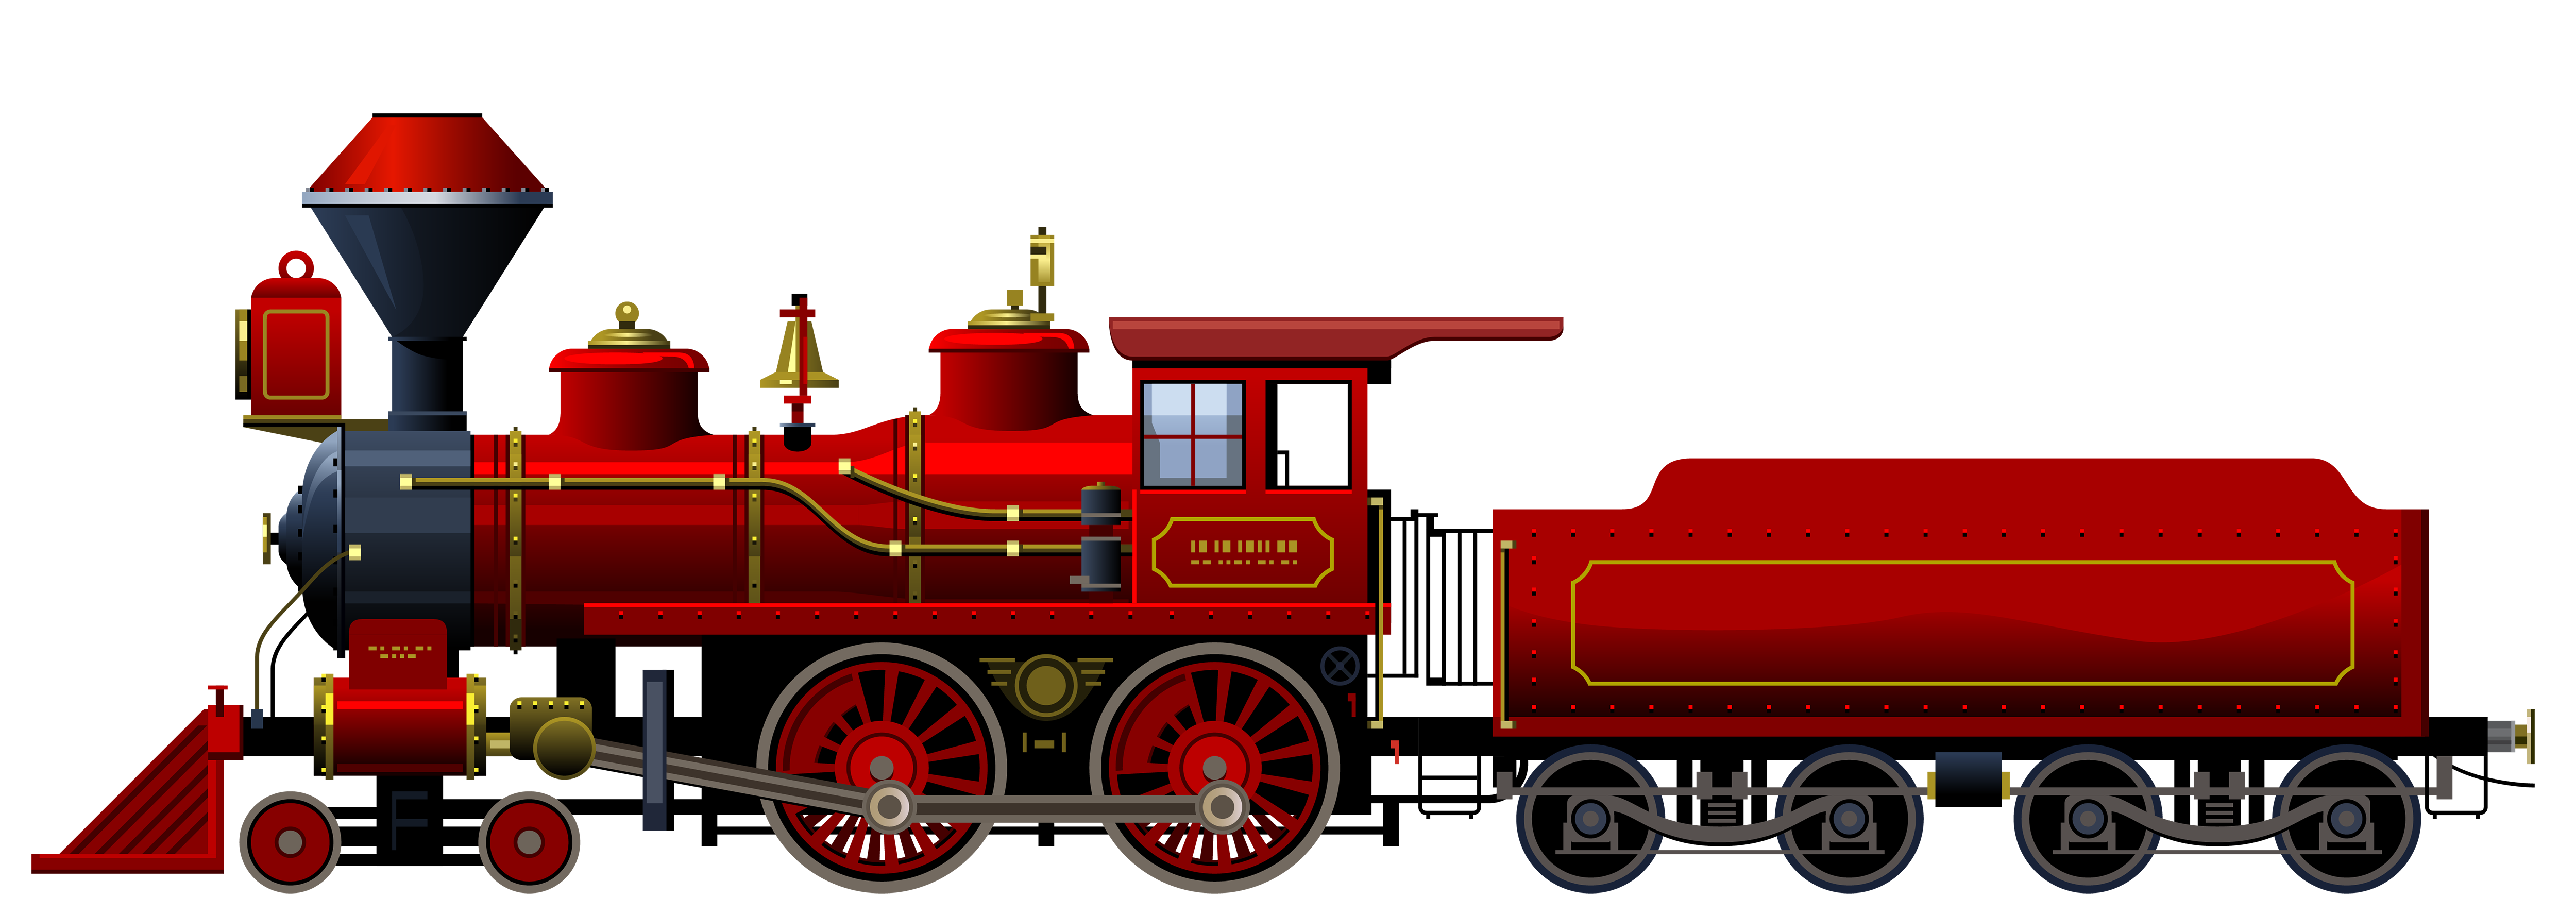 Engine clipart red train. Best free lo otive